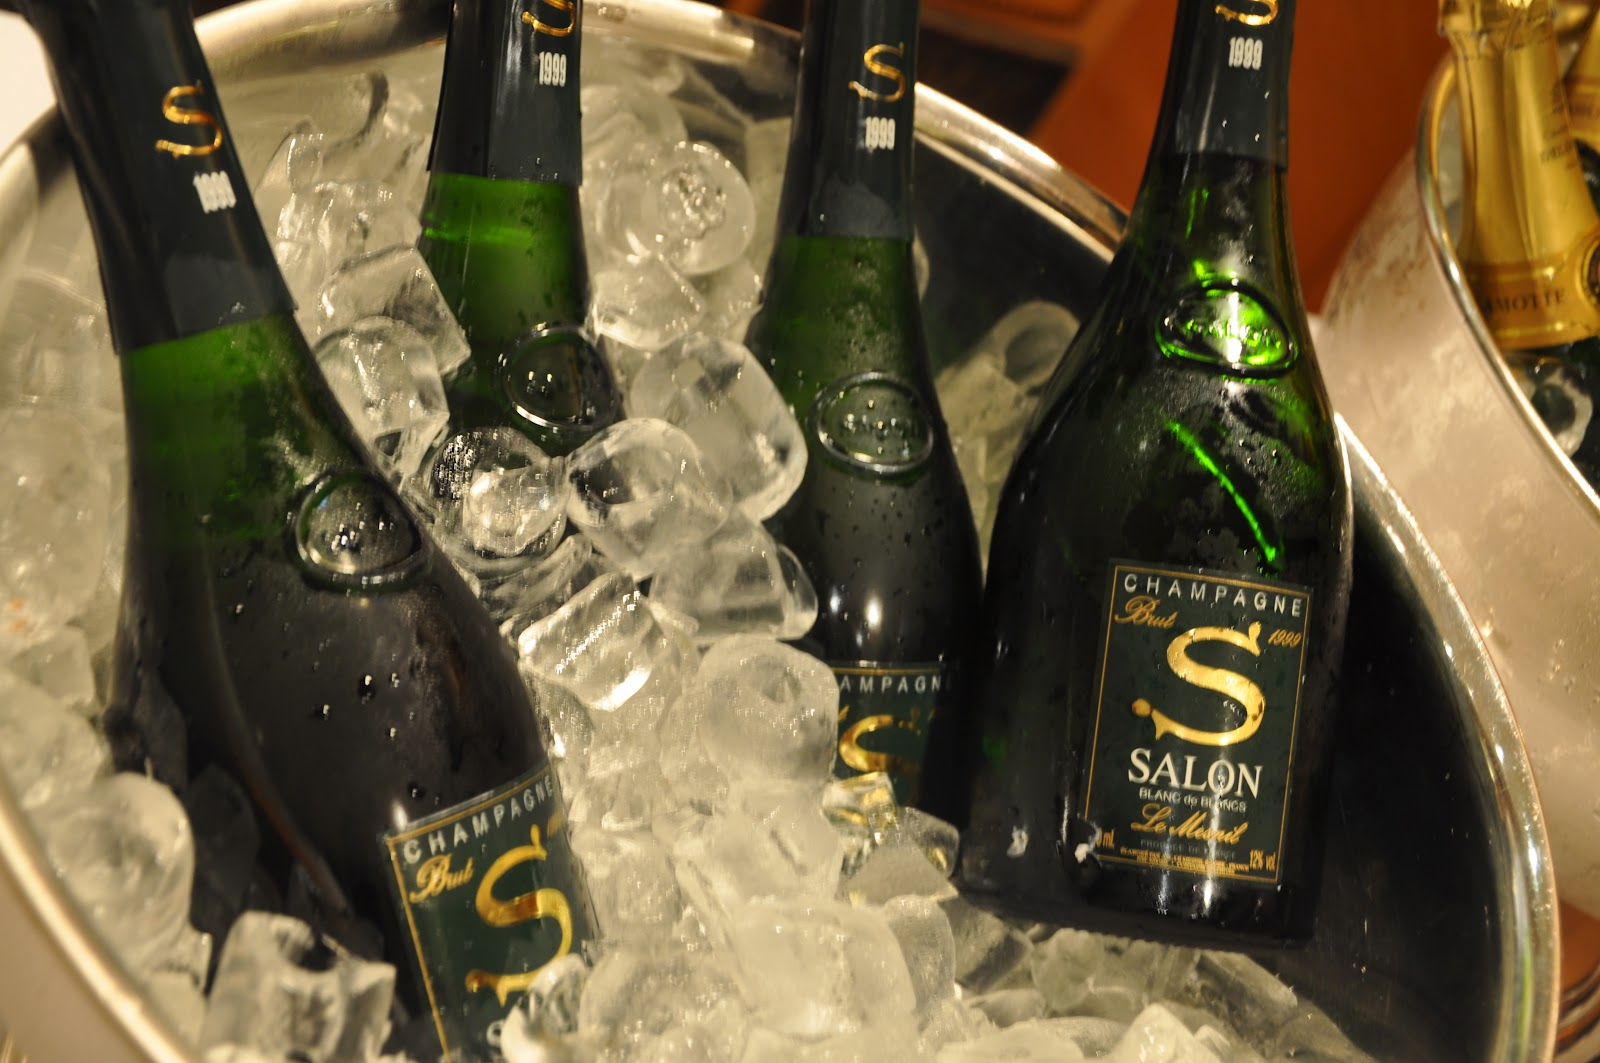 Champagne Salon Interview Didier Depond Champagne Salon Wine Times